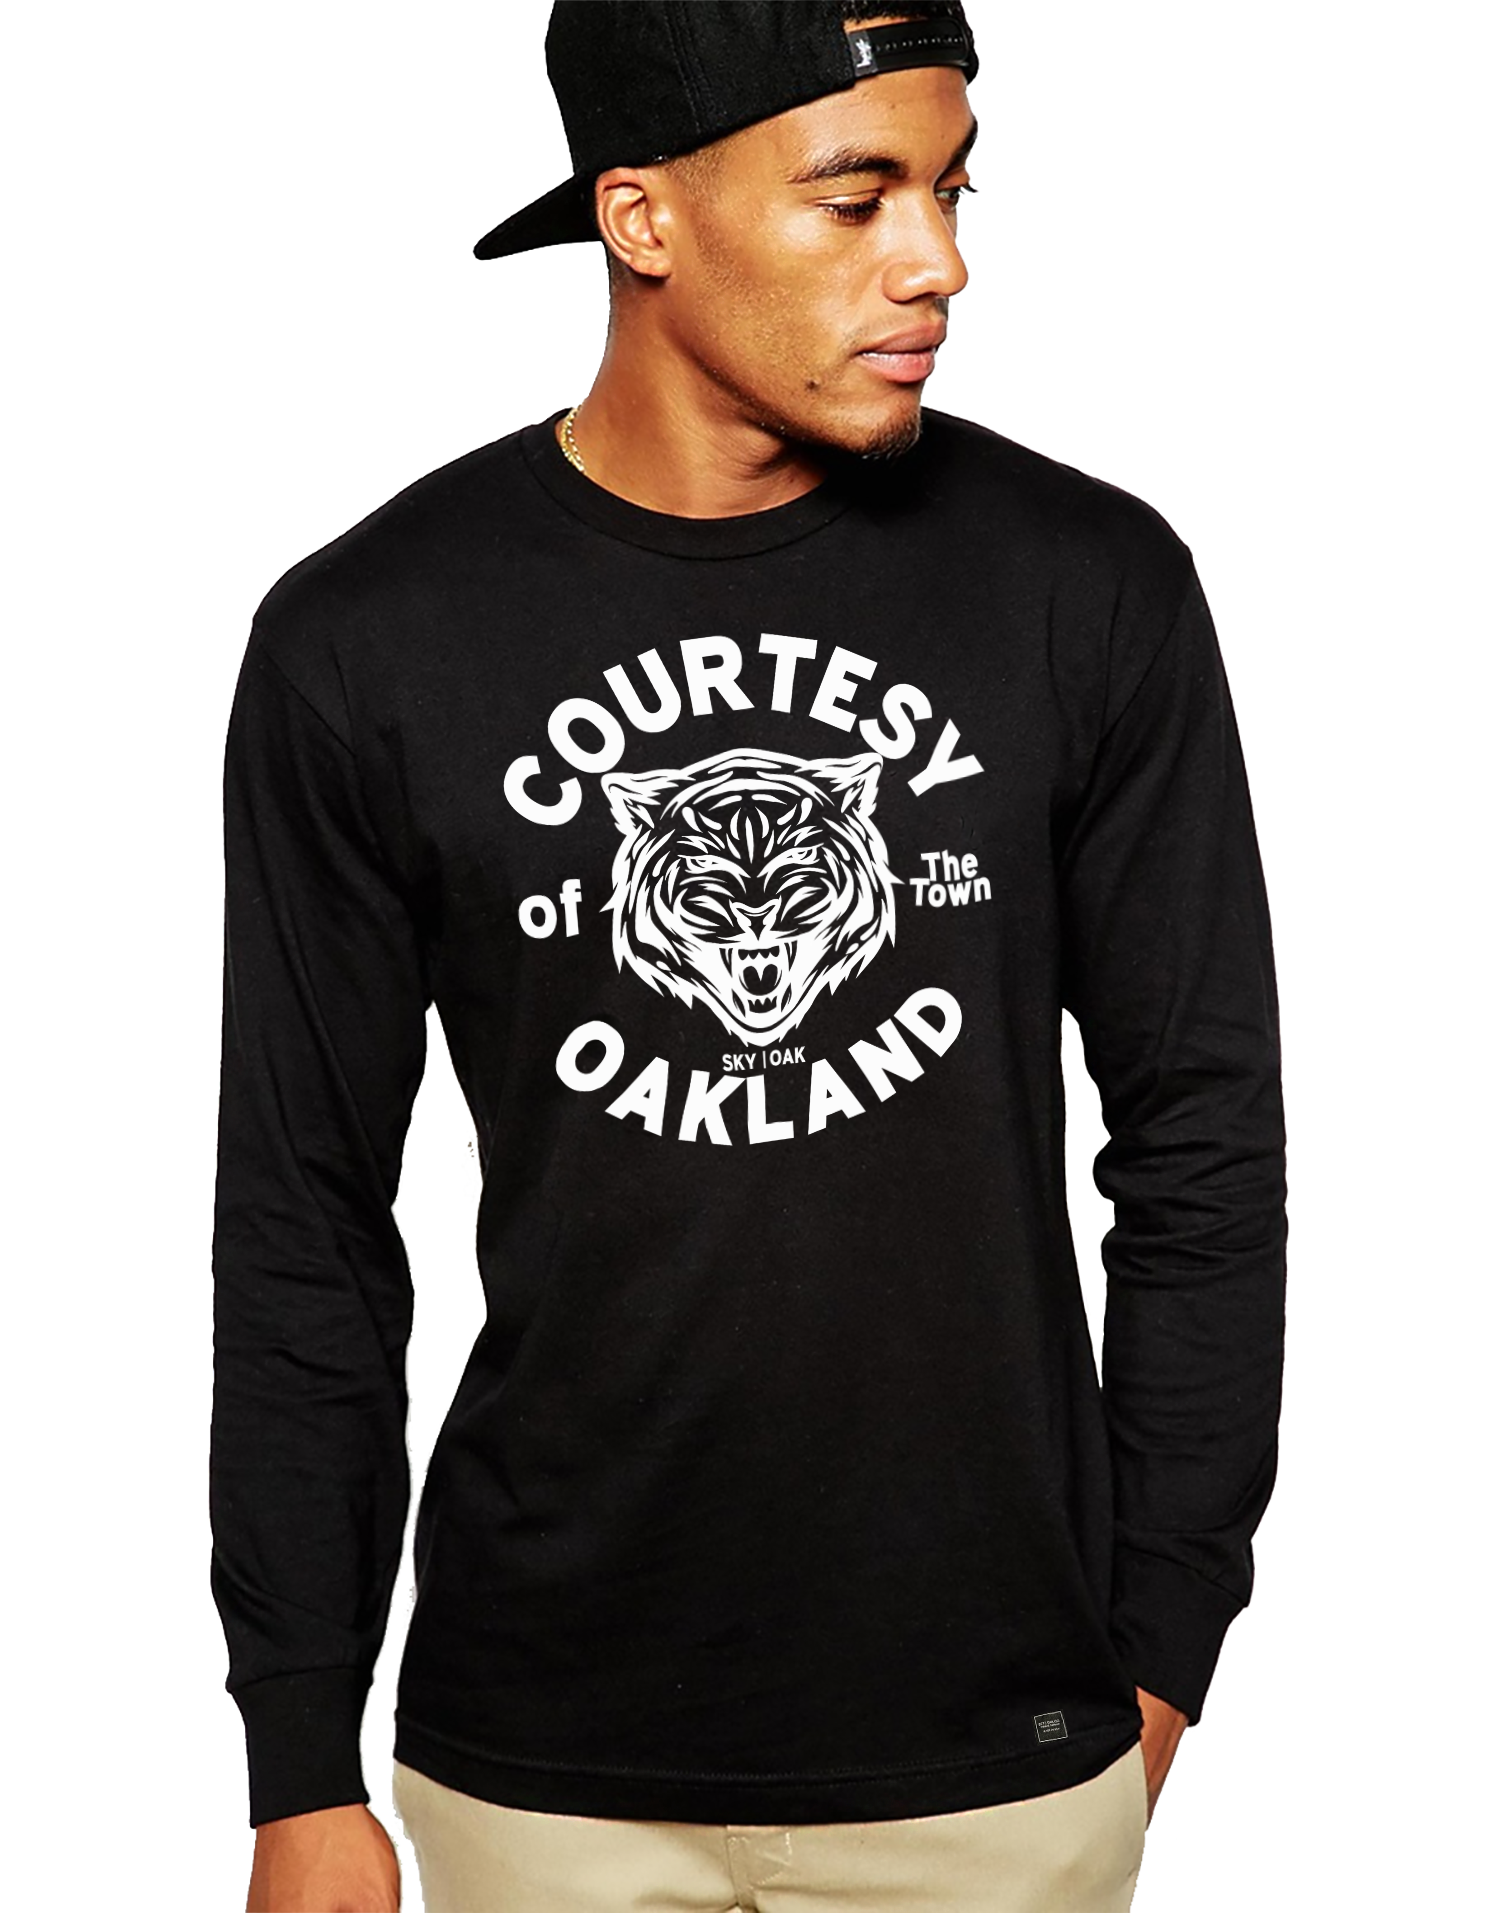 Sky Oak Co_Courtesy of Oakland_long_sleeve_tee_black_white_model_home_page_cover.png